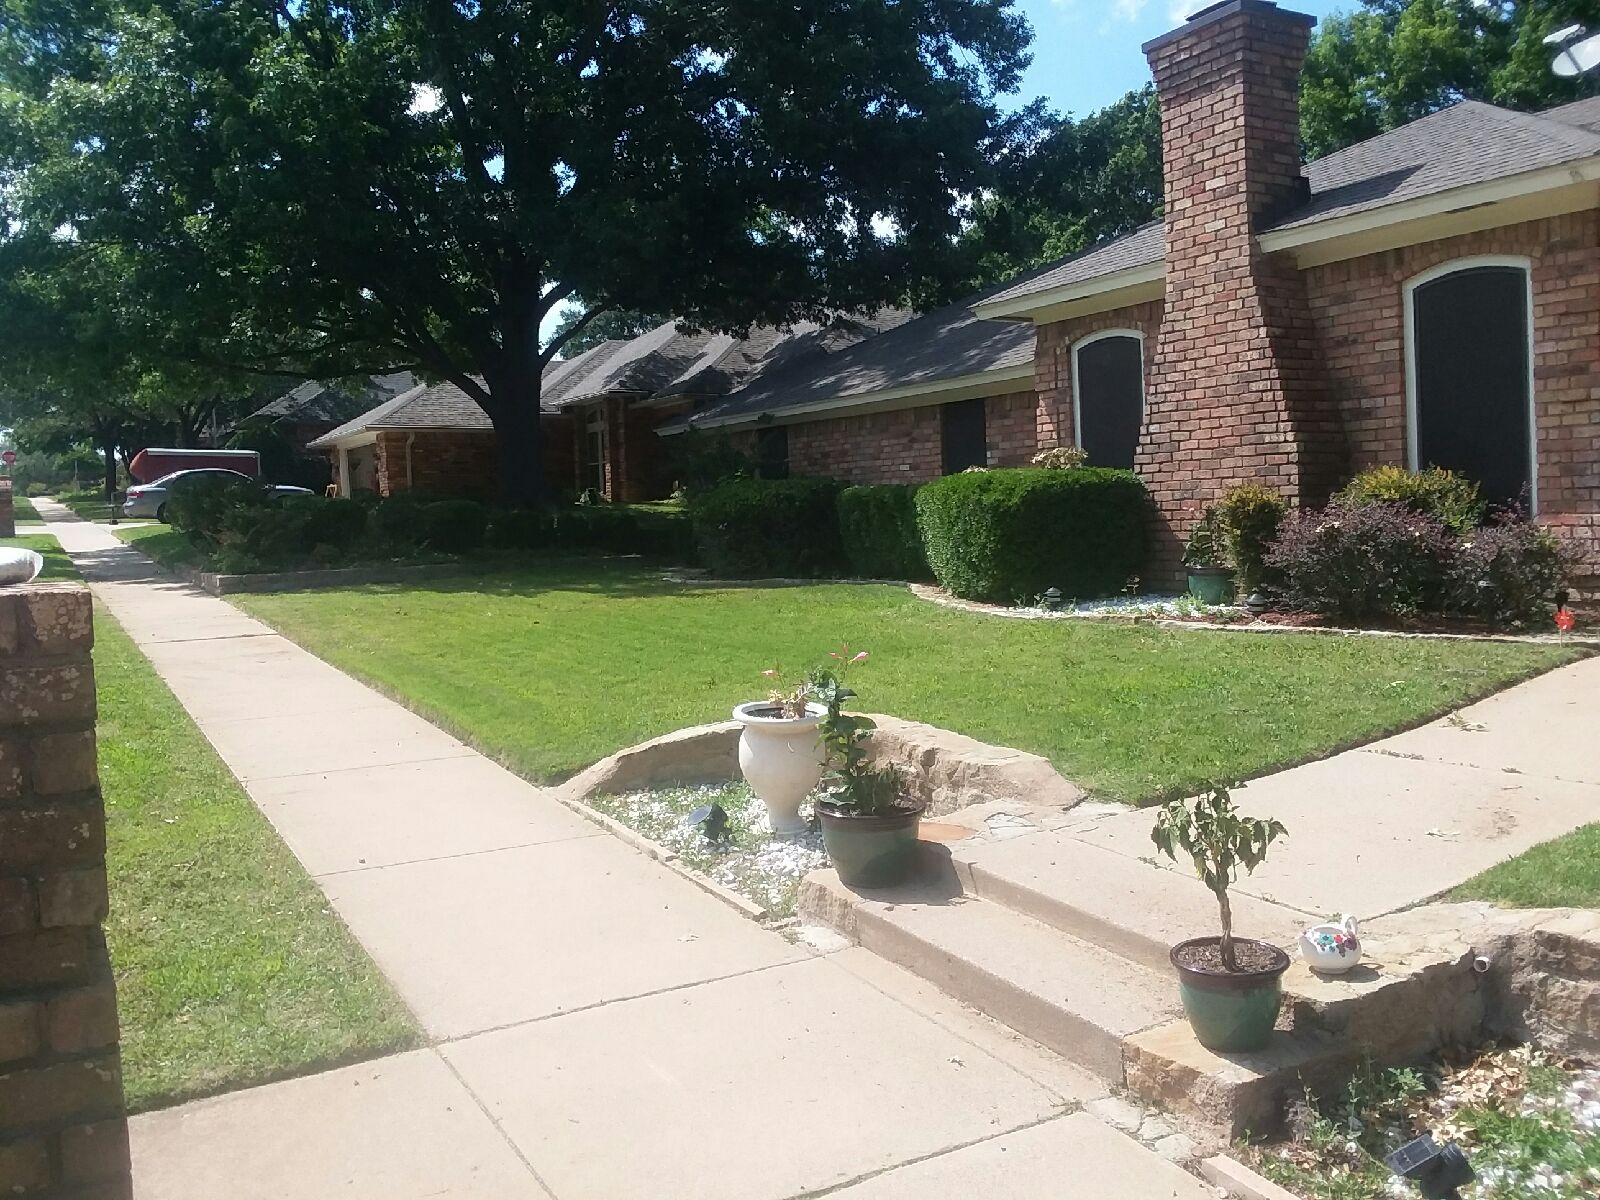 Yard mowing company in Bedford, TX, 76021